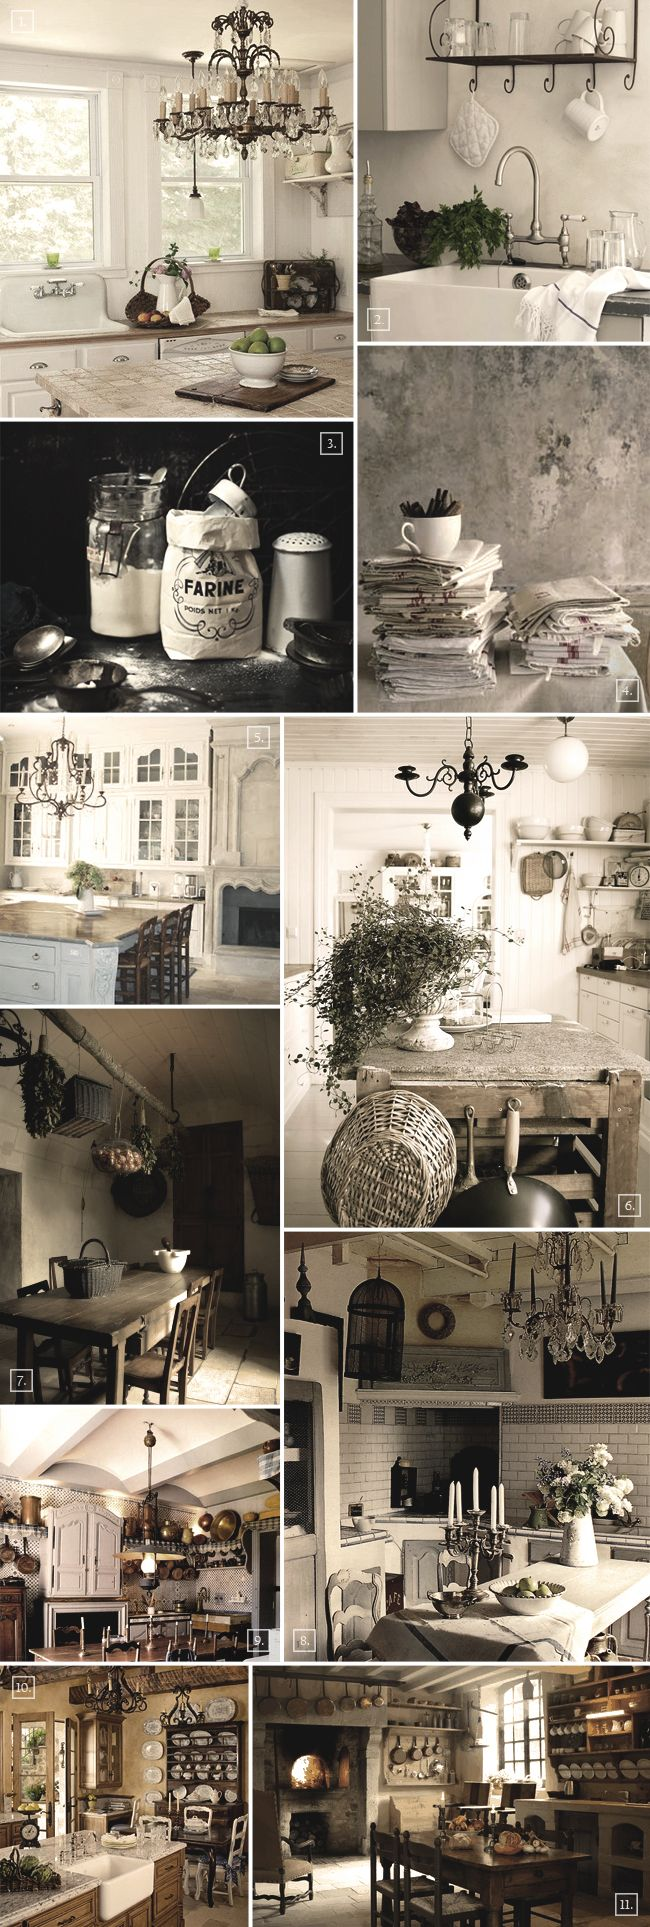 Best 25 french country kitchens ideas on pinterest french country kitchen with island french - Country kitchen ornaments ...